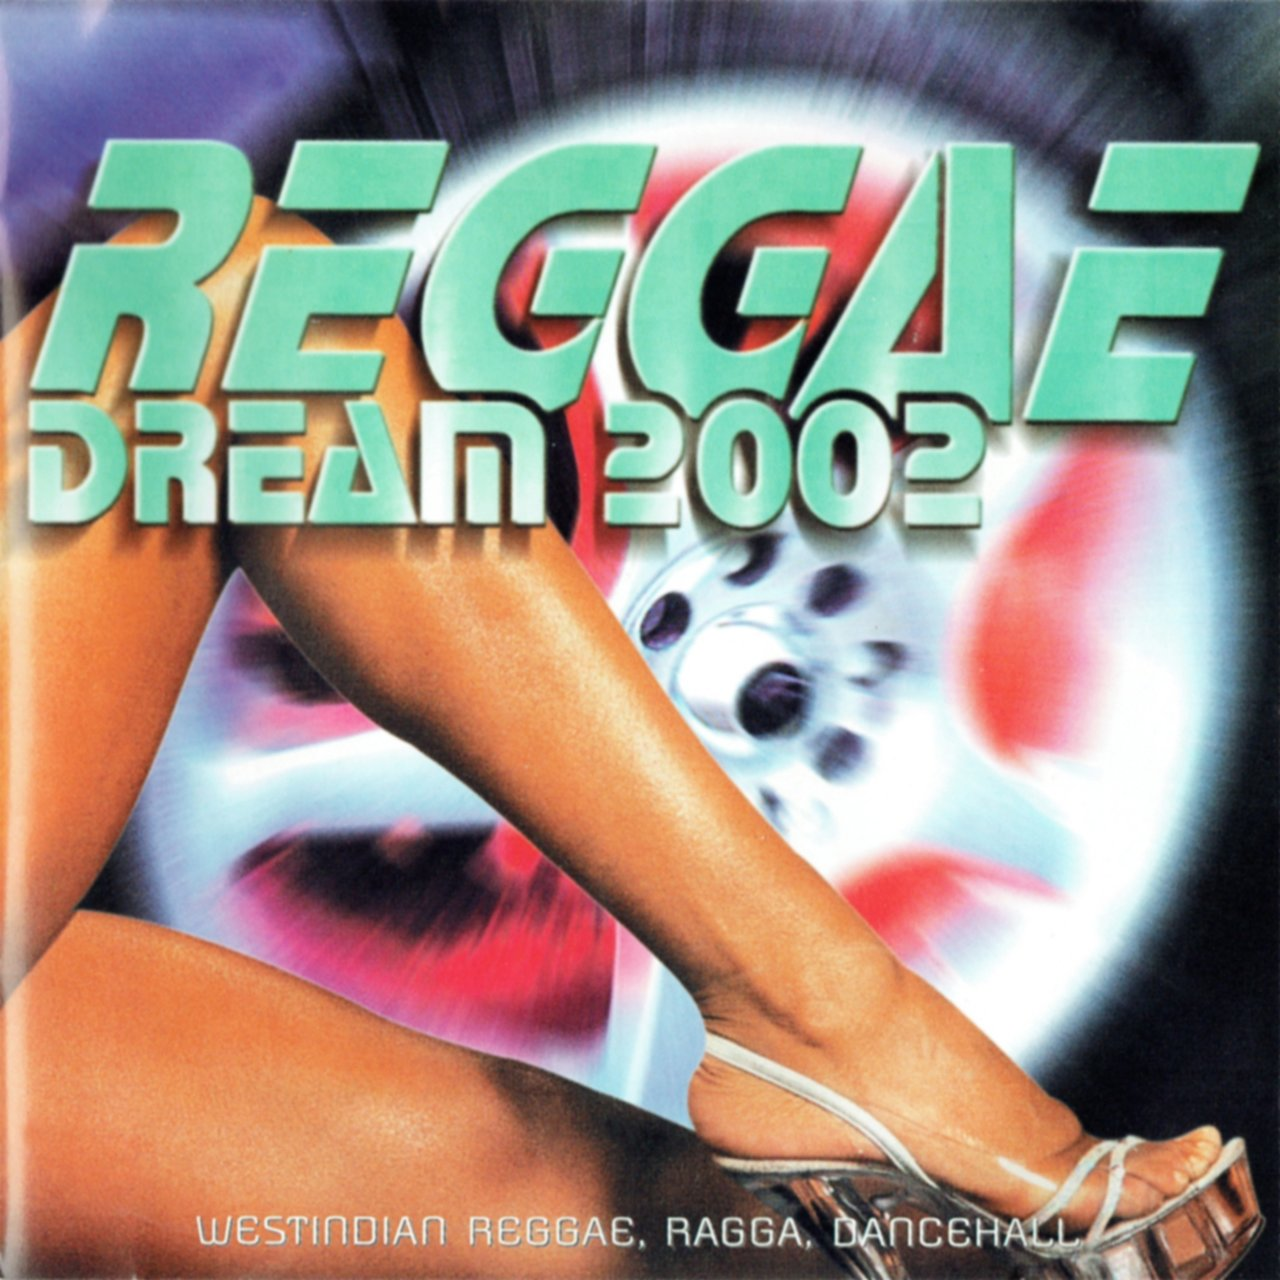 Reggae Dream 2002